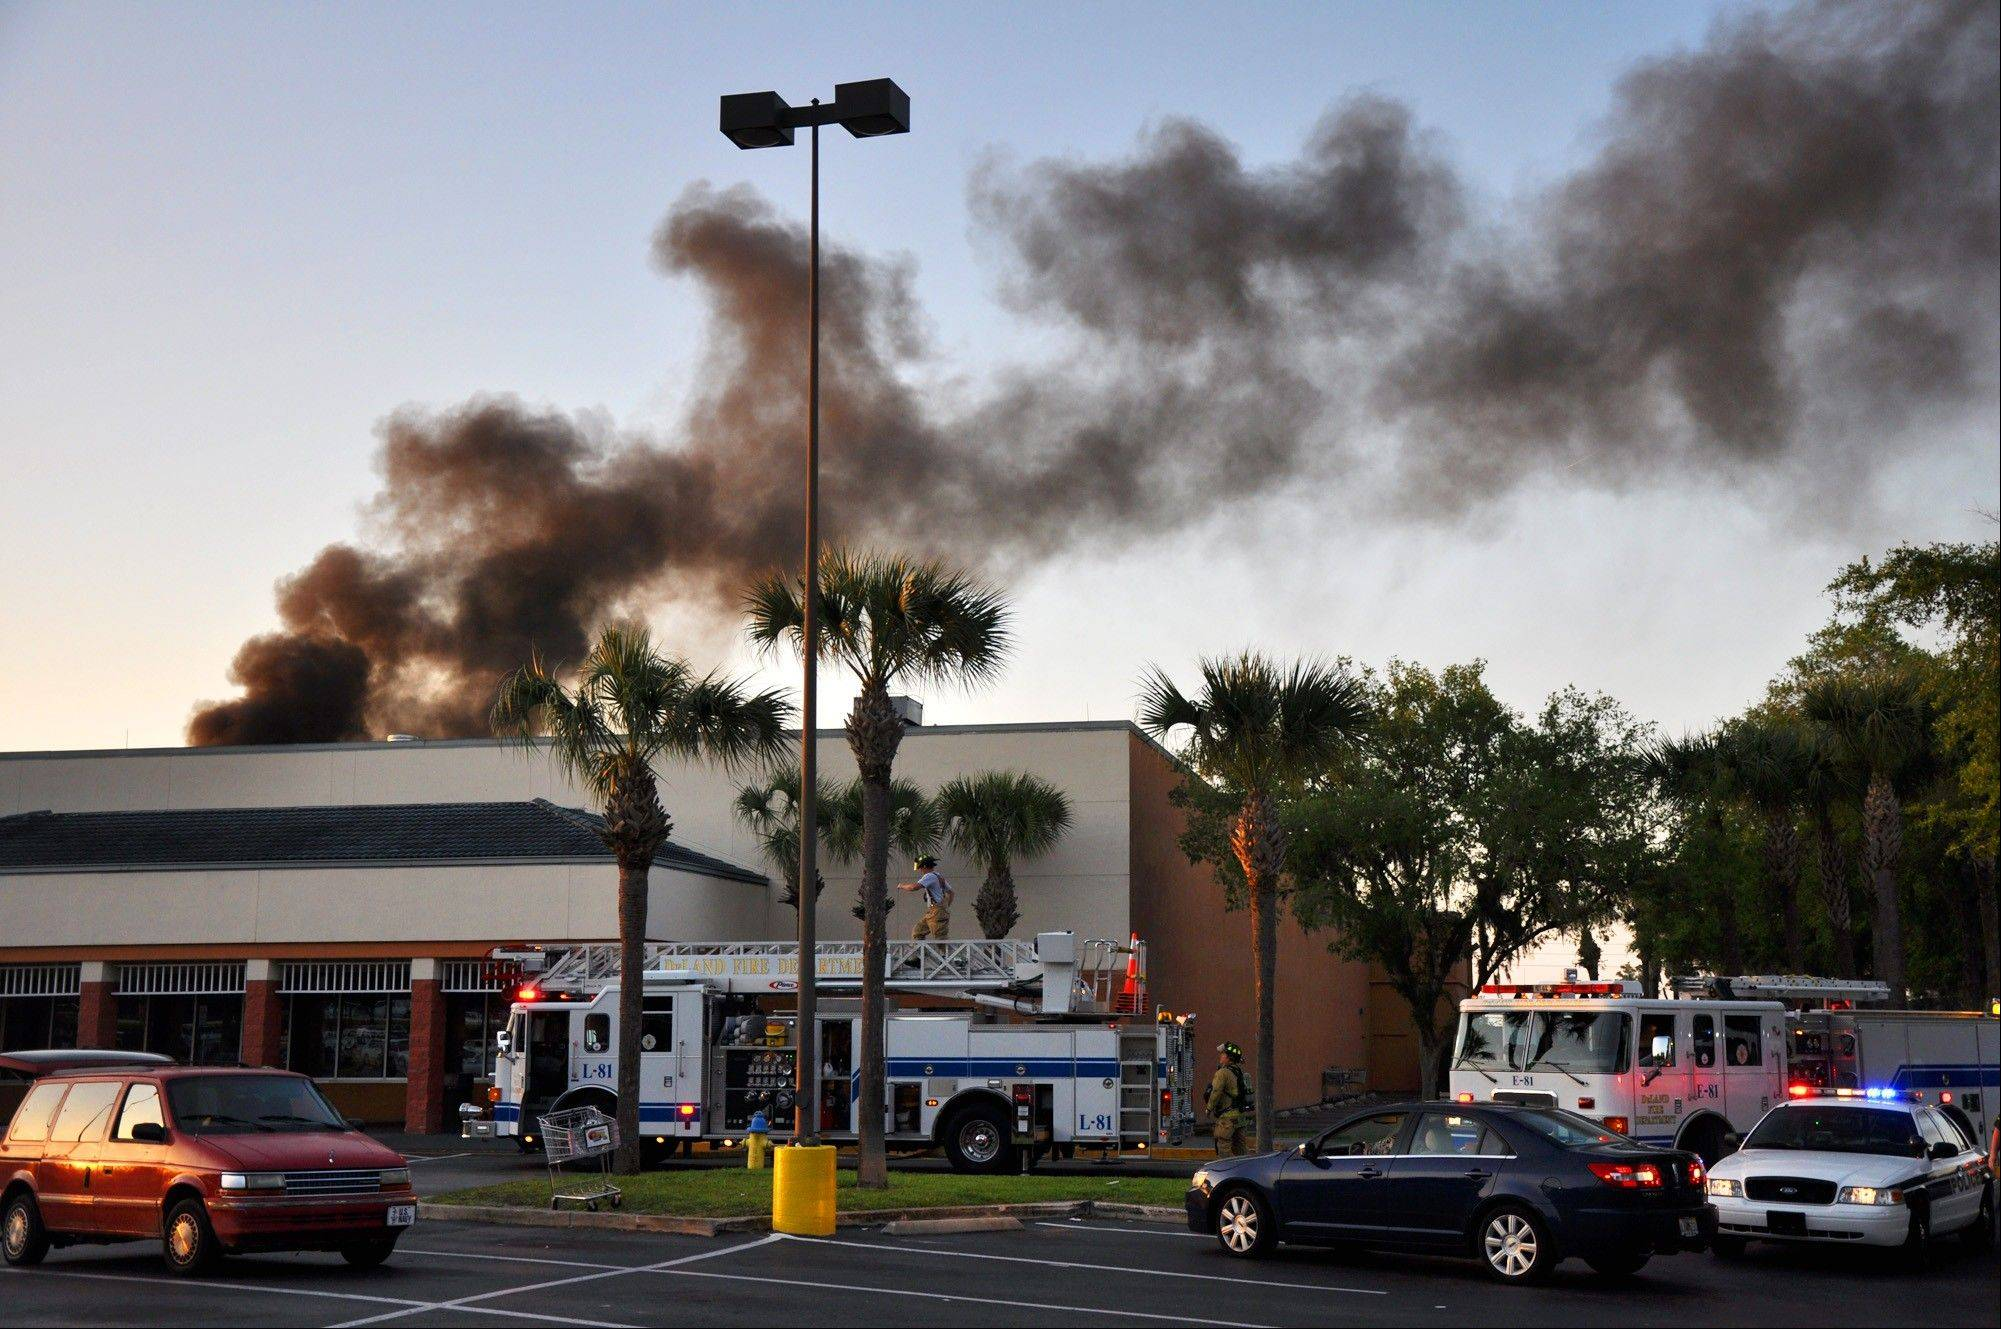 Fire officials work the scene of a small plane crash at the Publix Supermarket on East International Speedway Boulevard in DeLand, Fla., April 2, 2012. Kim Presbrey, an Aurora attorney, was killed.